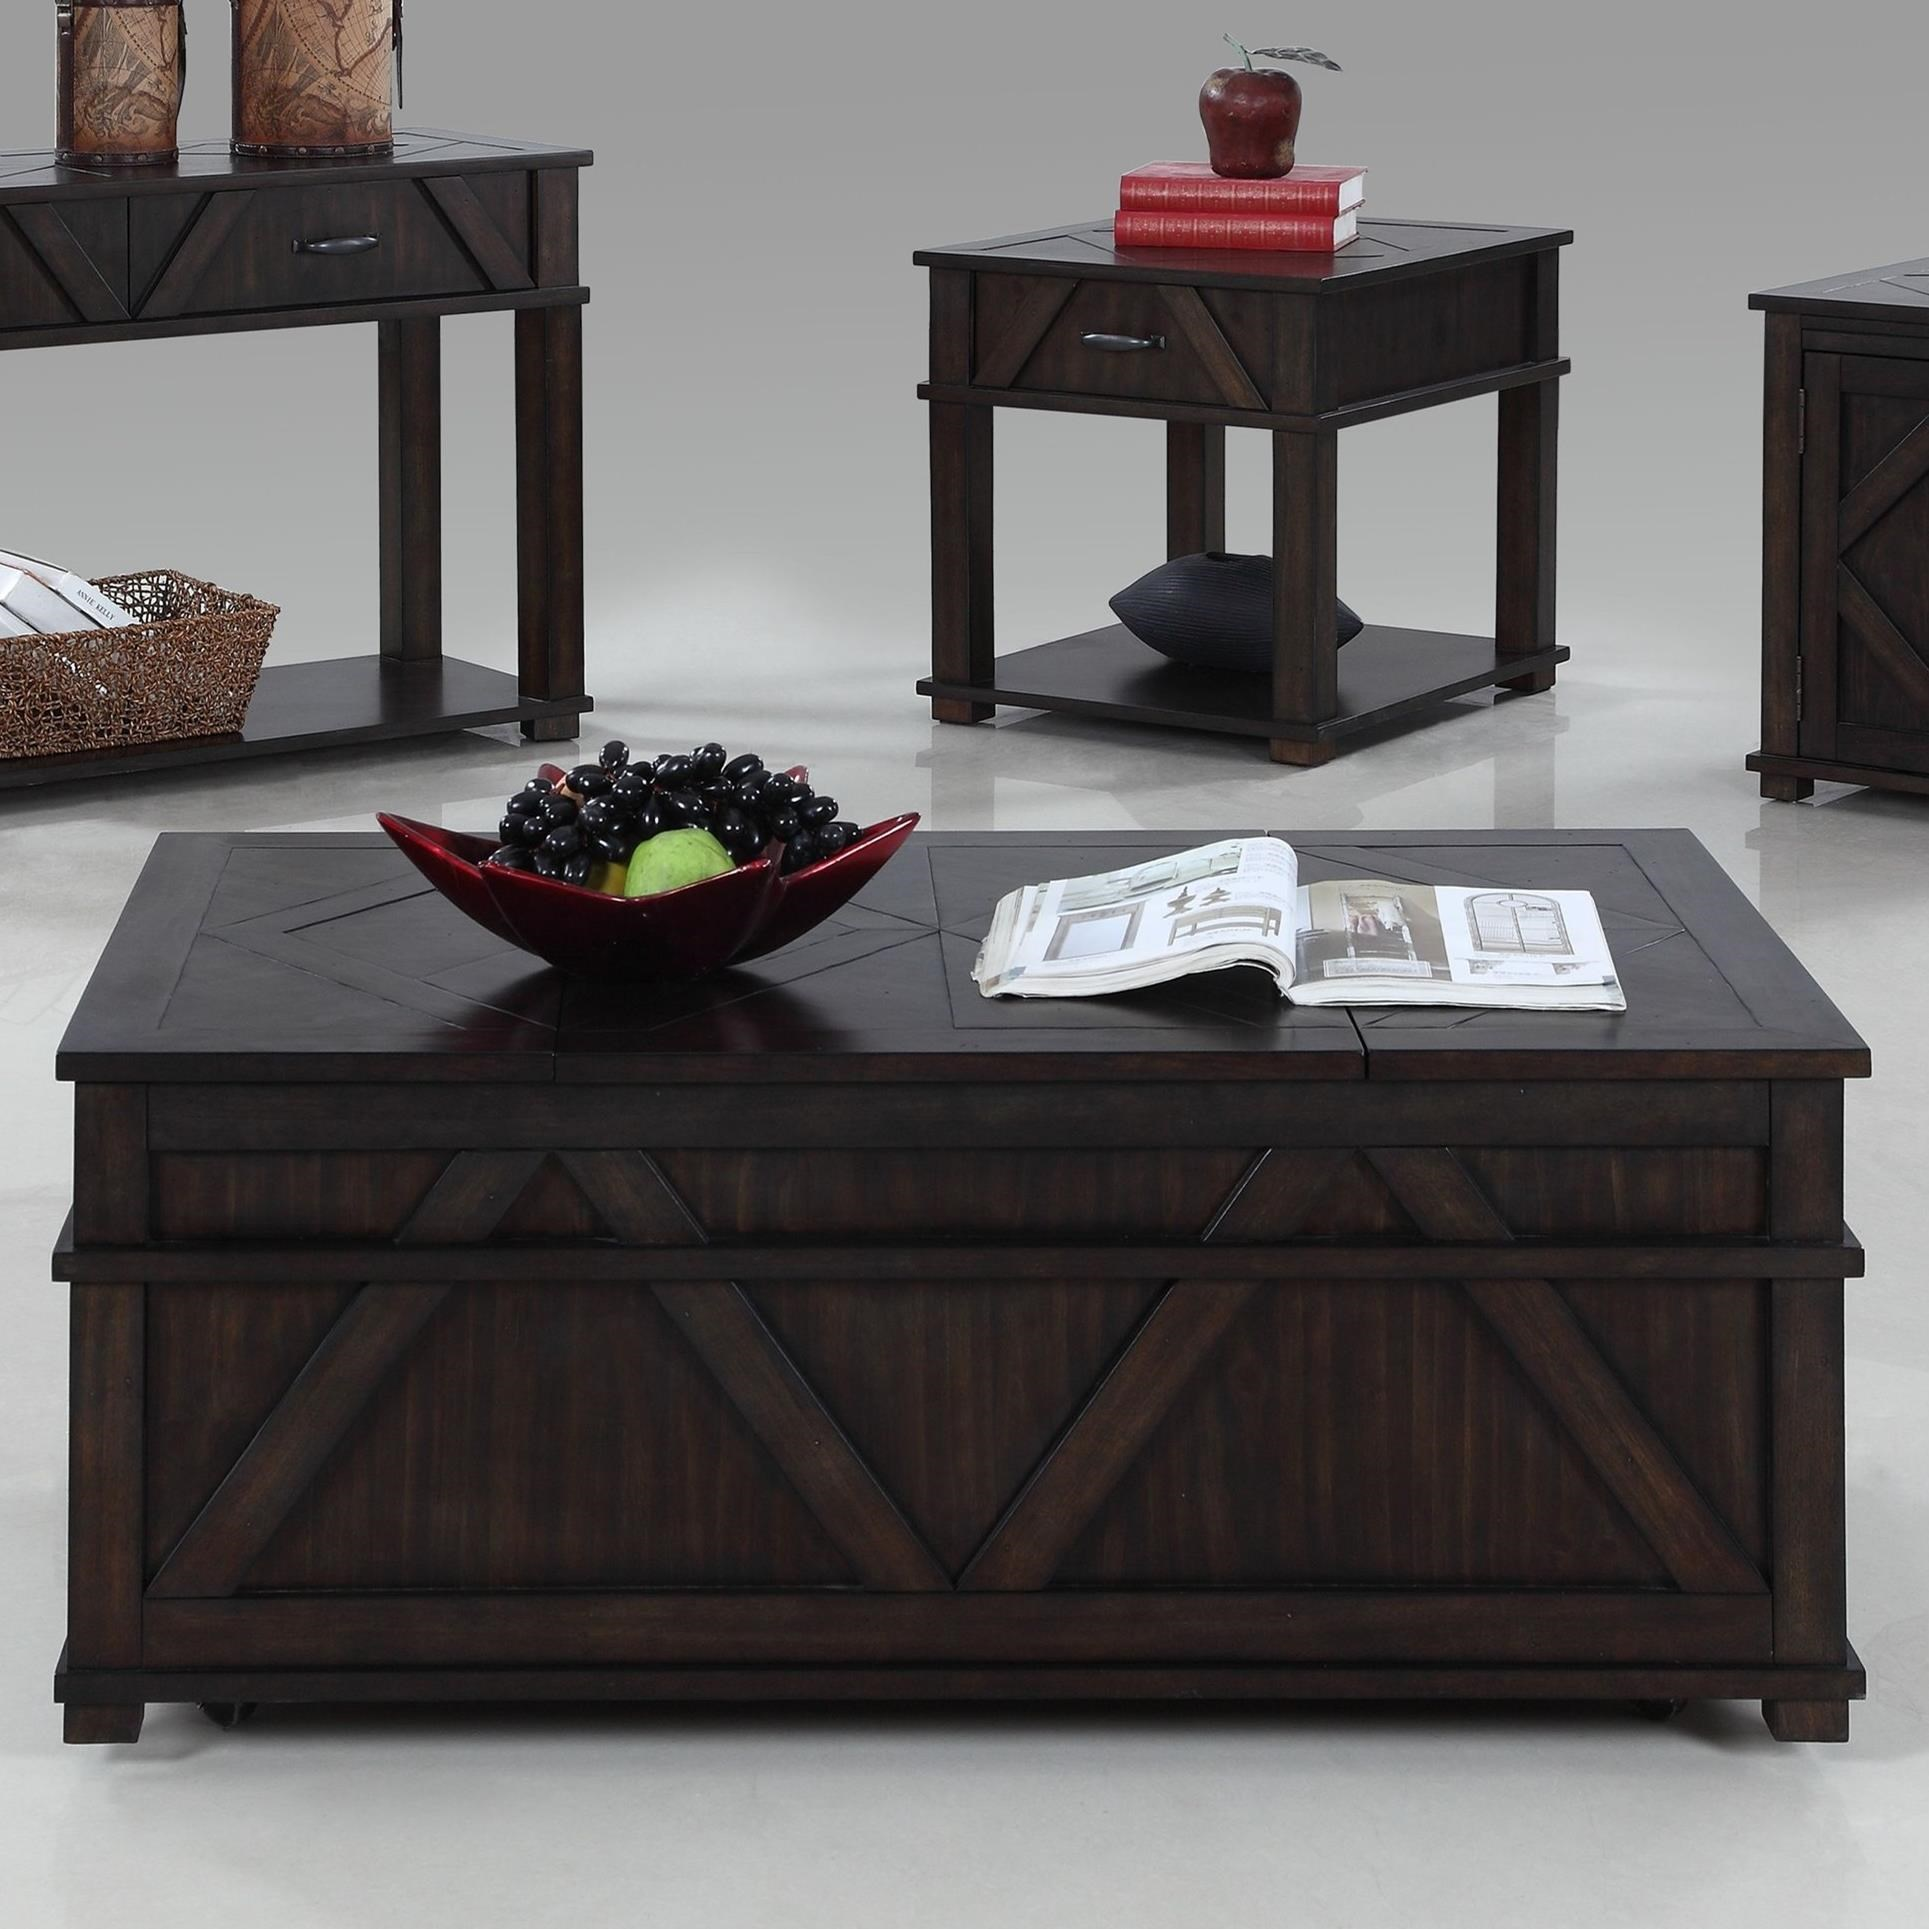 little bedside table probably perfect favorite black storage end progressive furniture foxcroft rustic castered chest products color cocktail item number harden tables office and